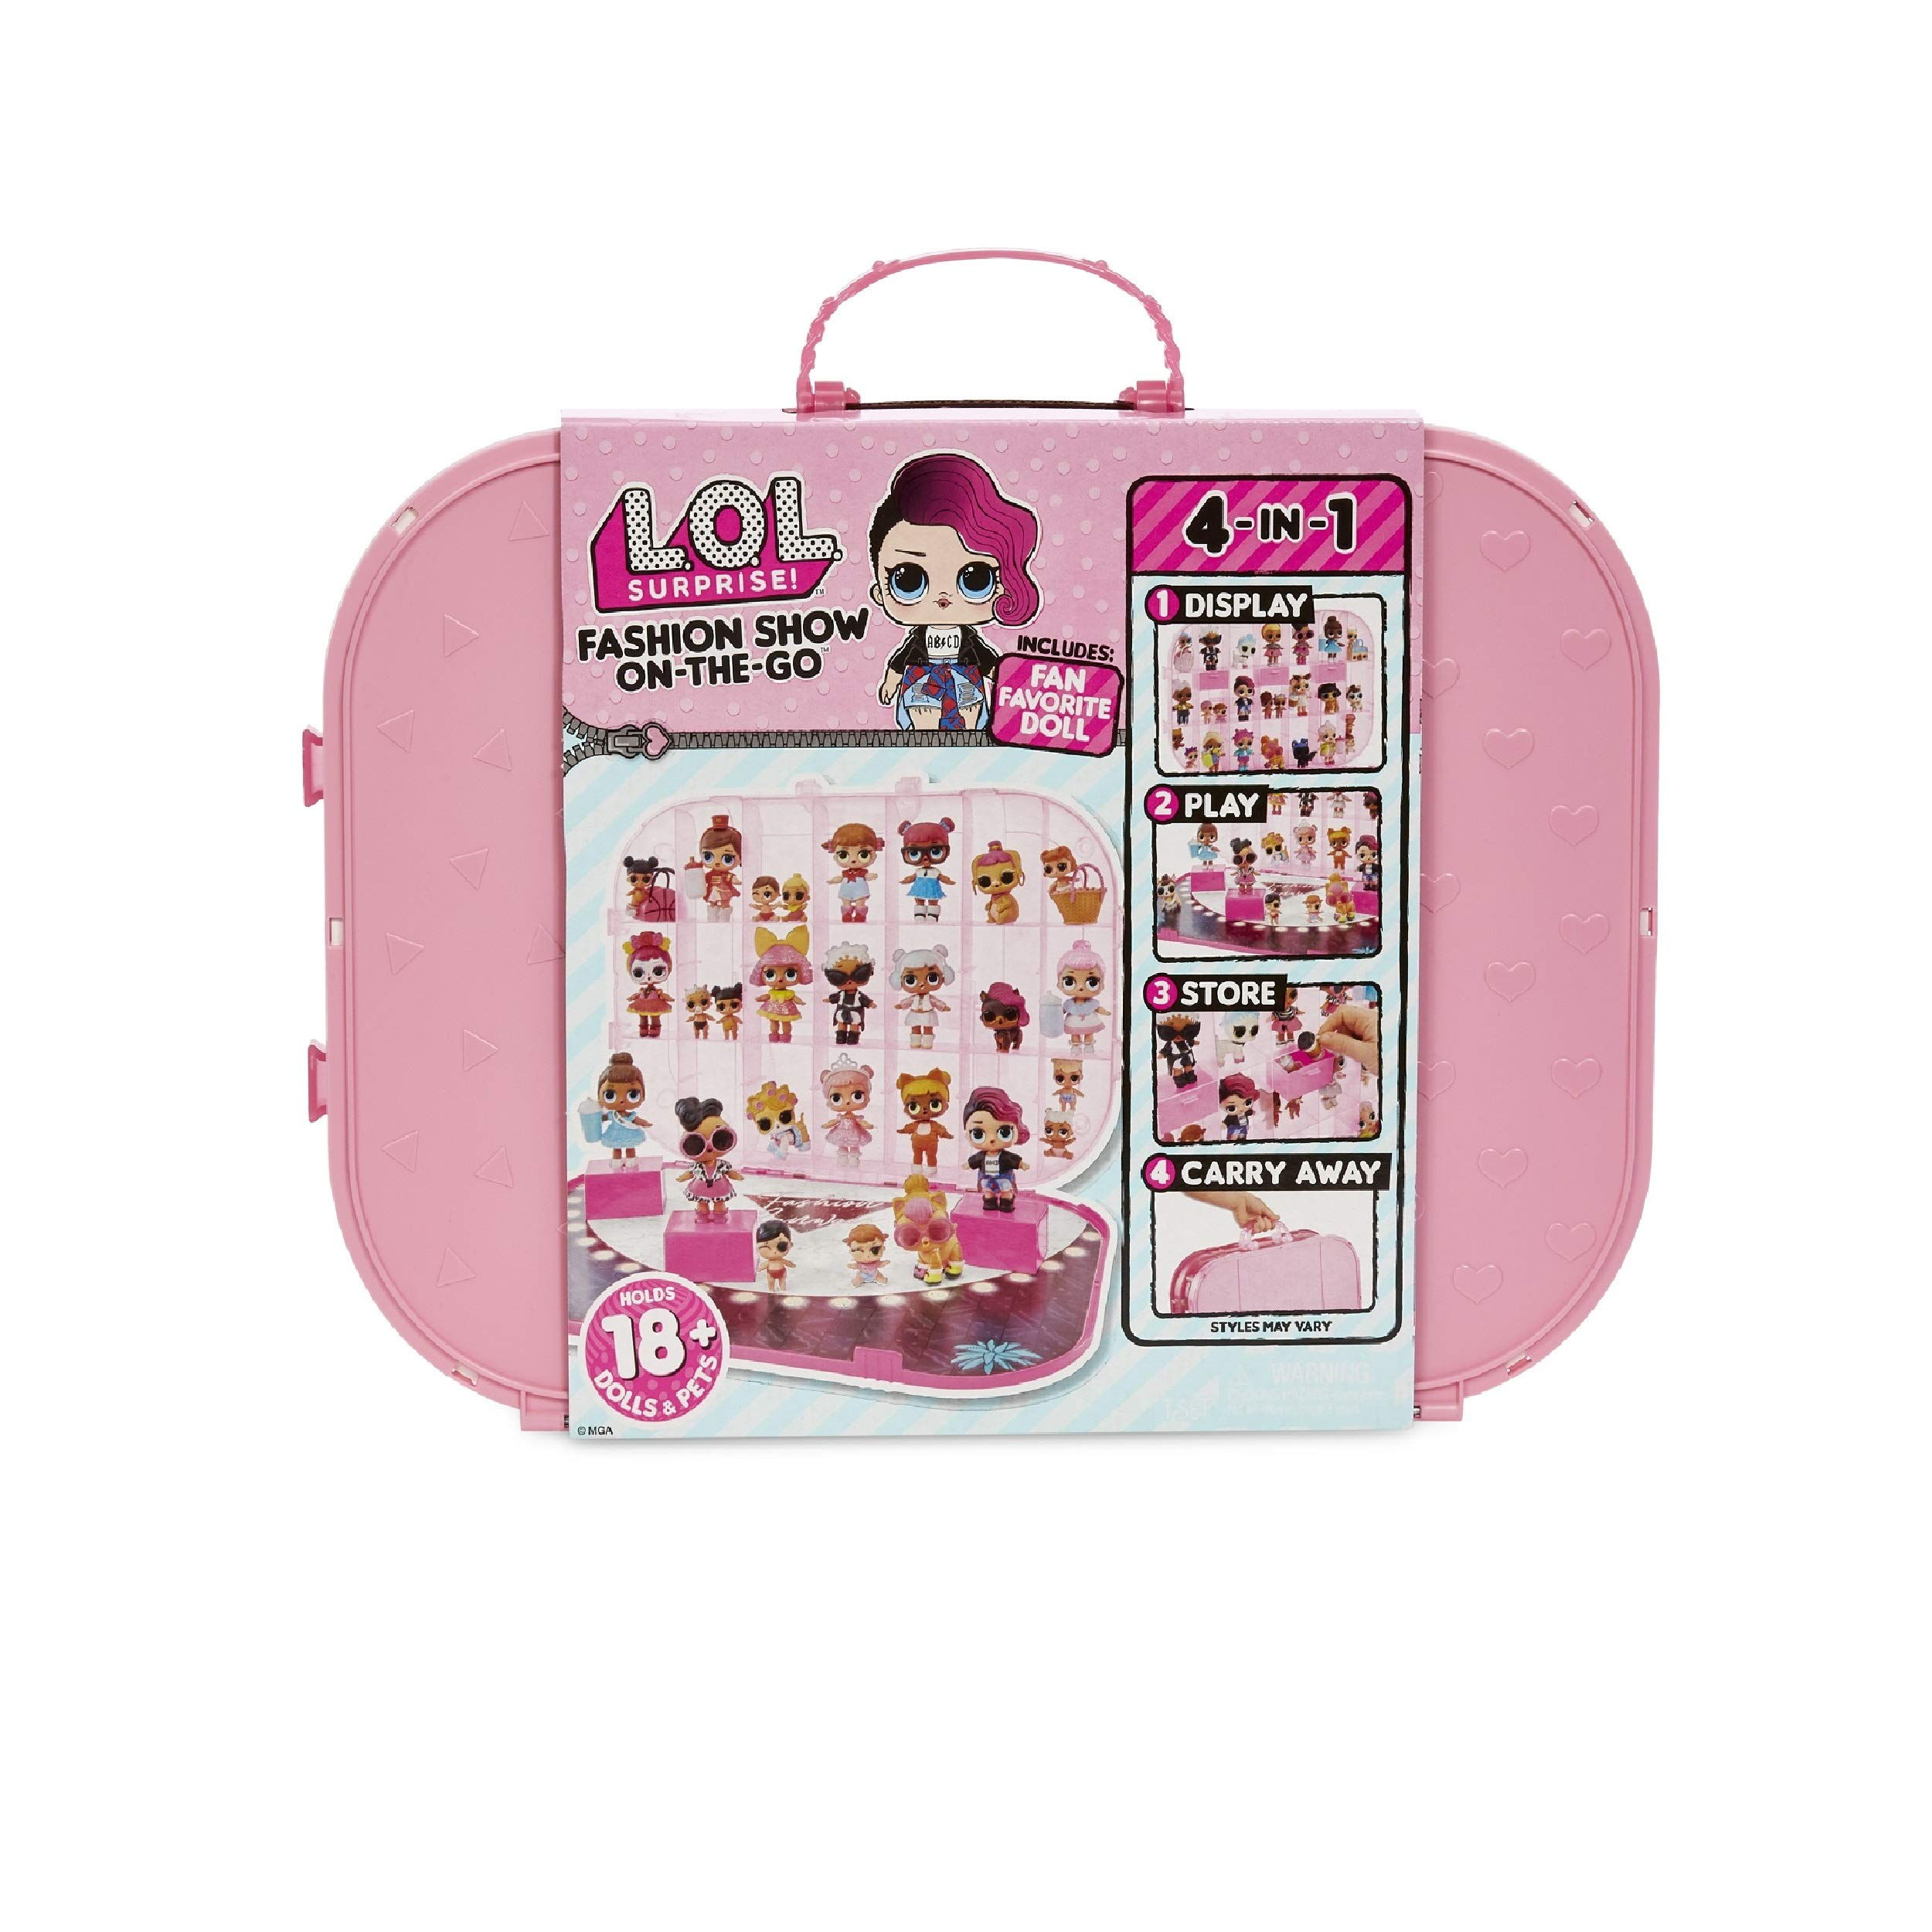 L.O.L 서프라이즈 패션쇼 온더고 플레이 세트 L.O.L Surprise! Fashion Show On-The-Go Storage/Playset with Doll Included